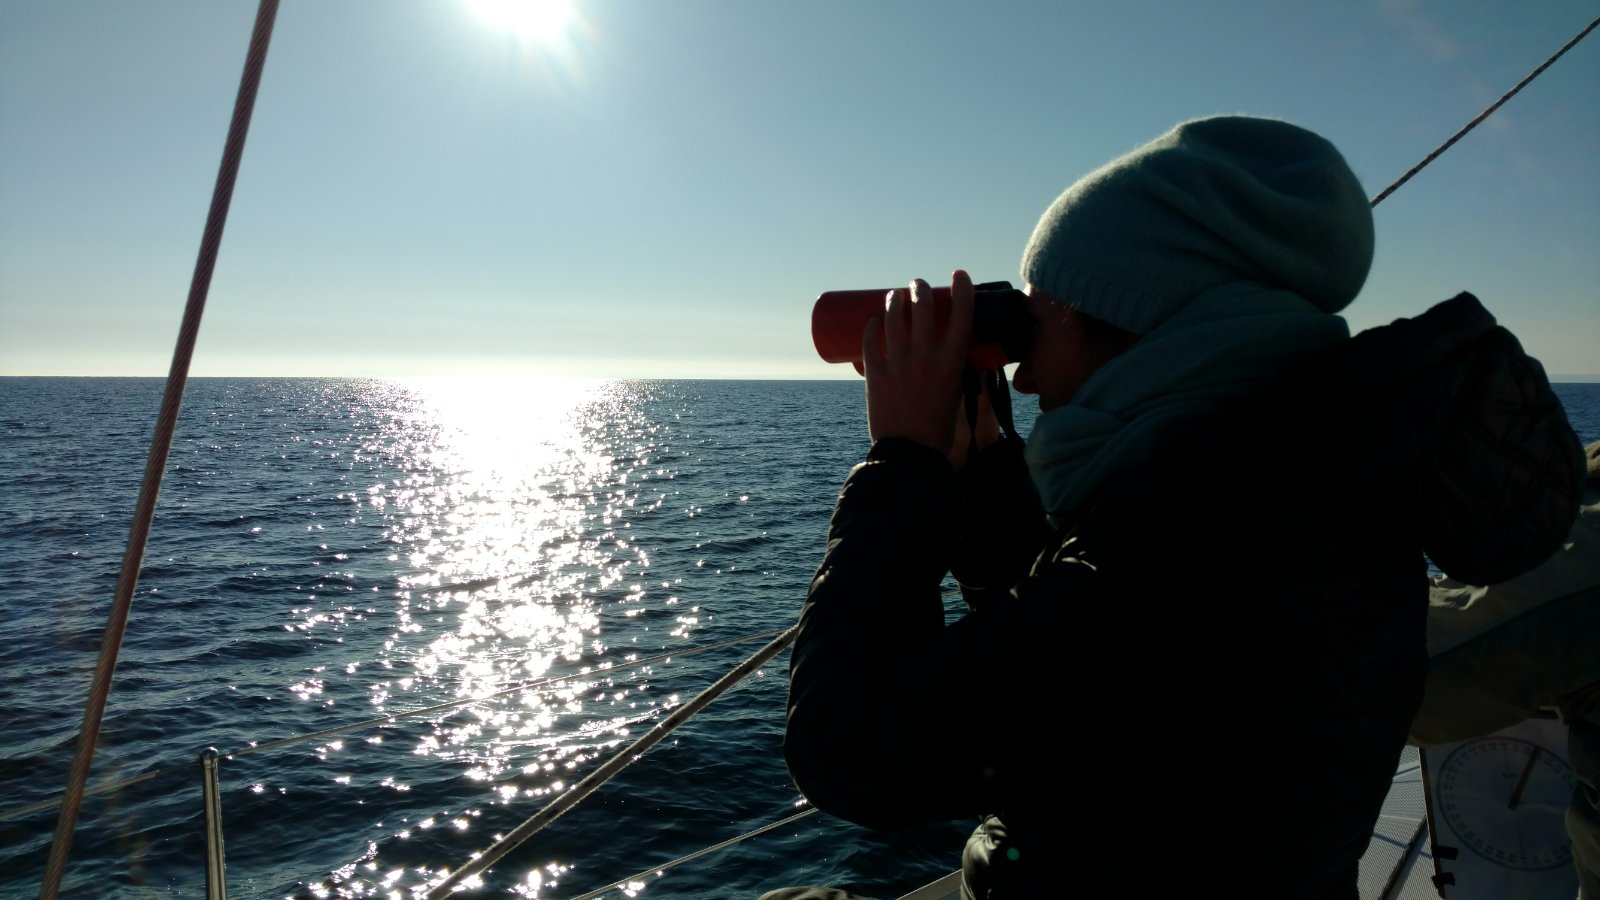 my volunteering for the dolphin monitoring expedition